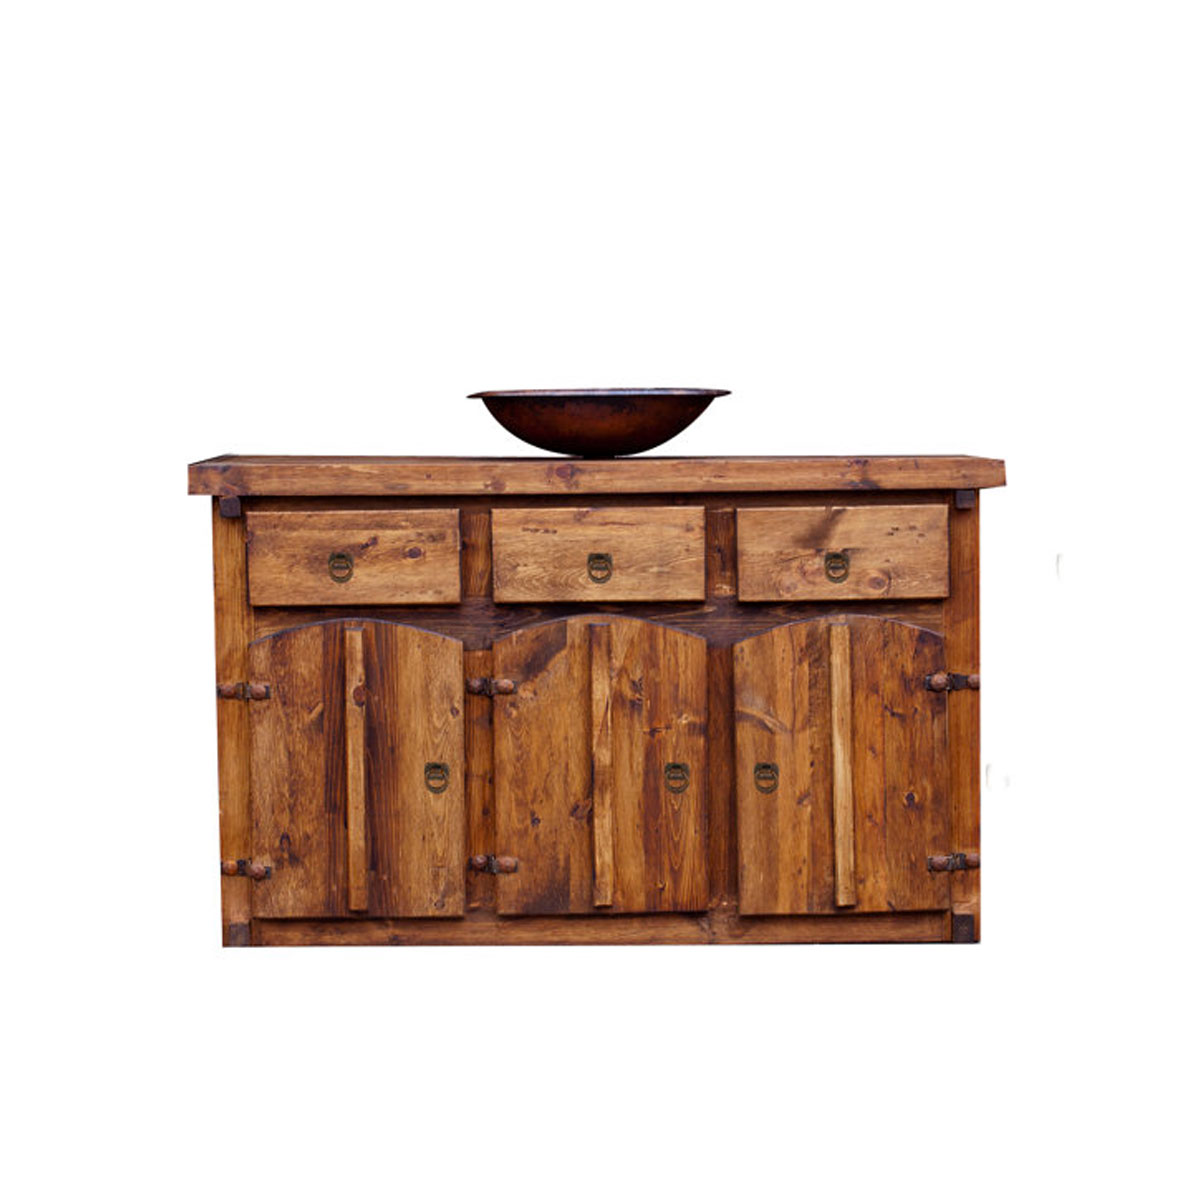 Buy Custom Made Colonial Bathroom Vanity With Unique Iron Accents Online